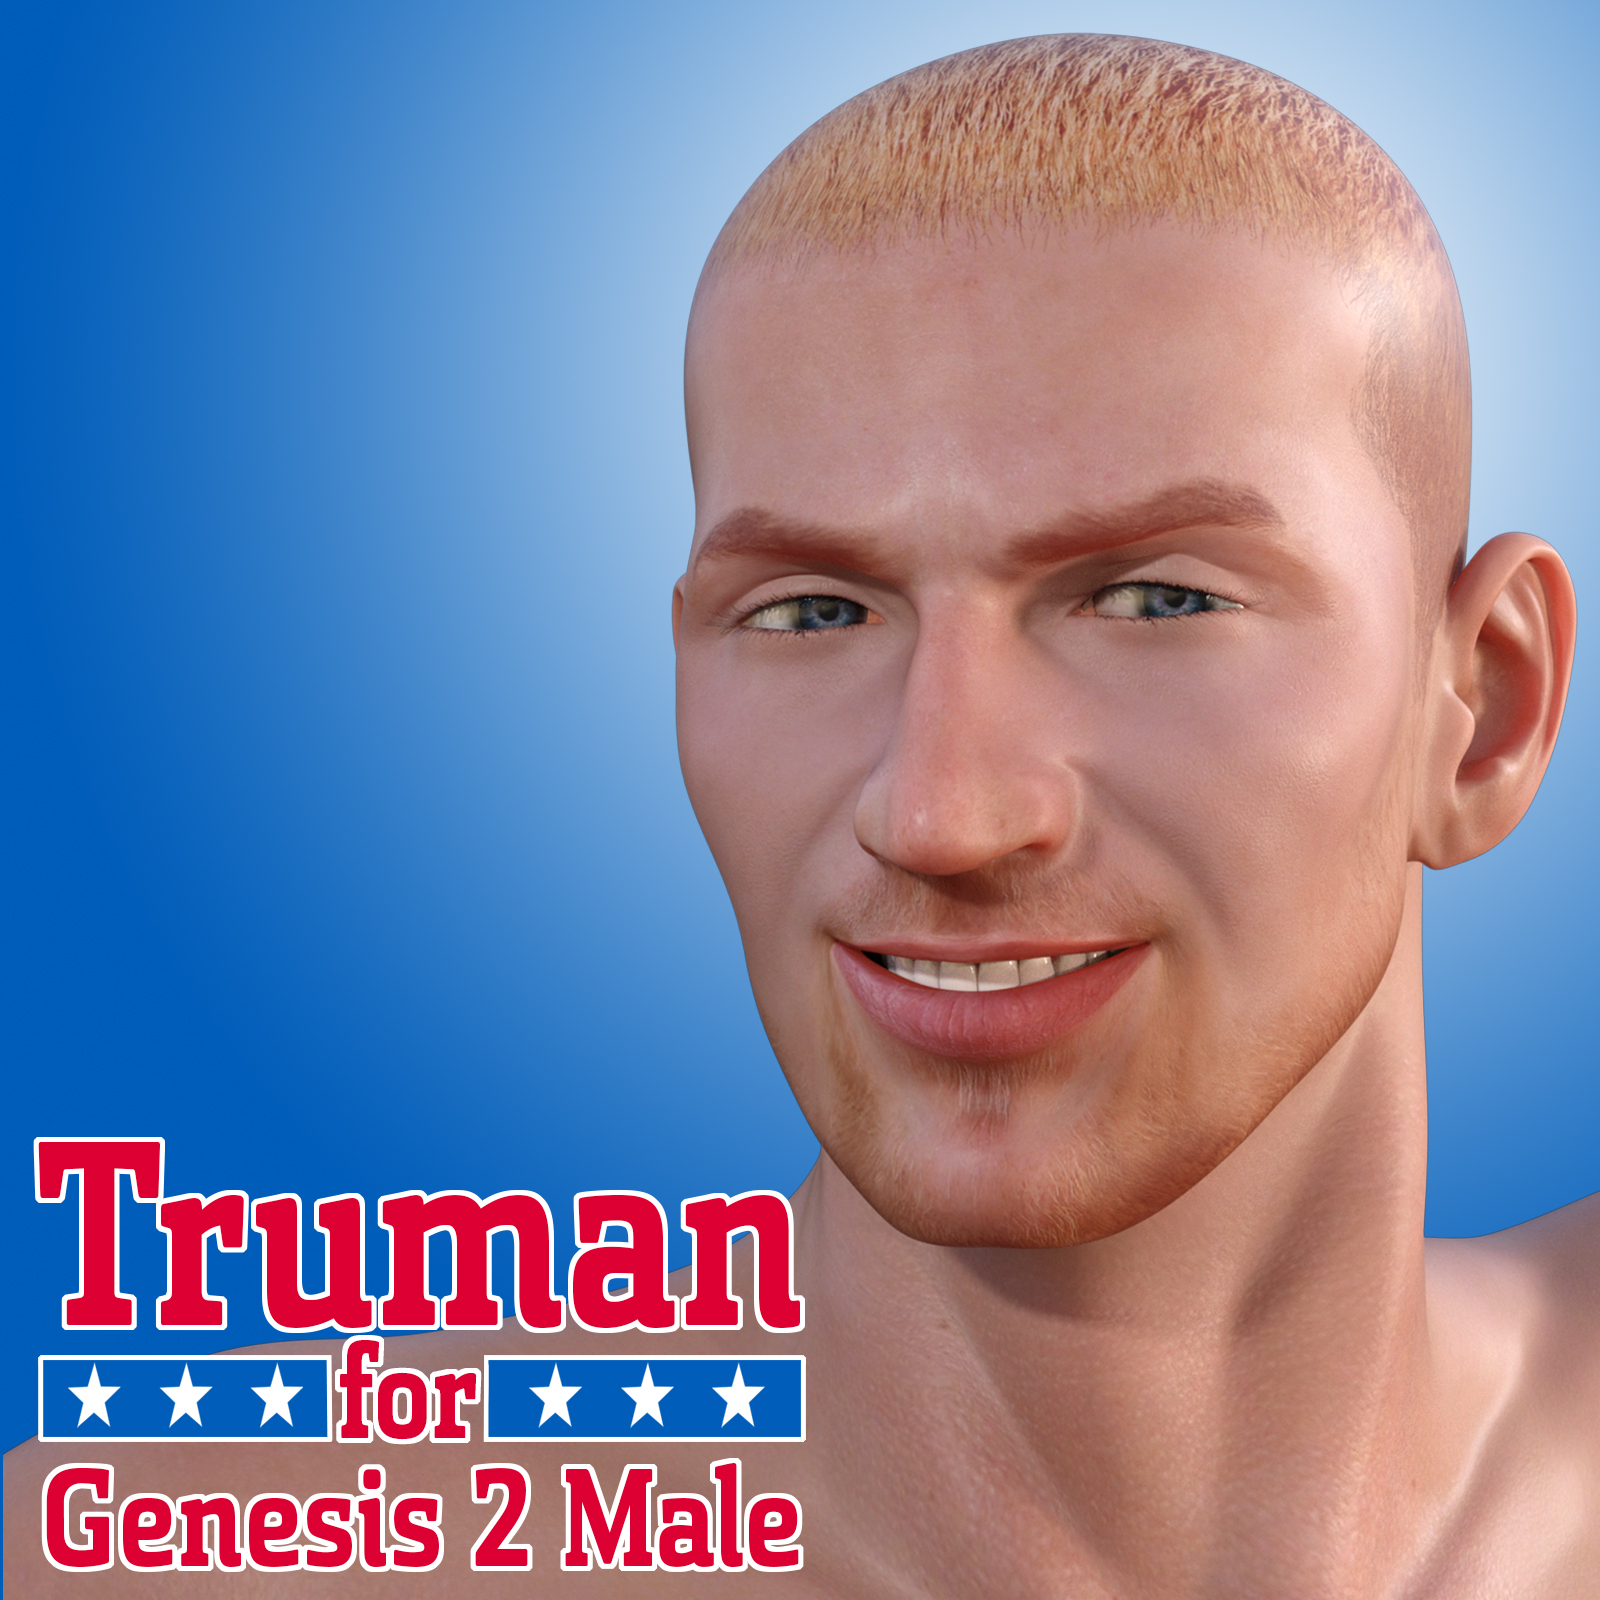 Truman for Genesis 2 Male by Dave